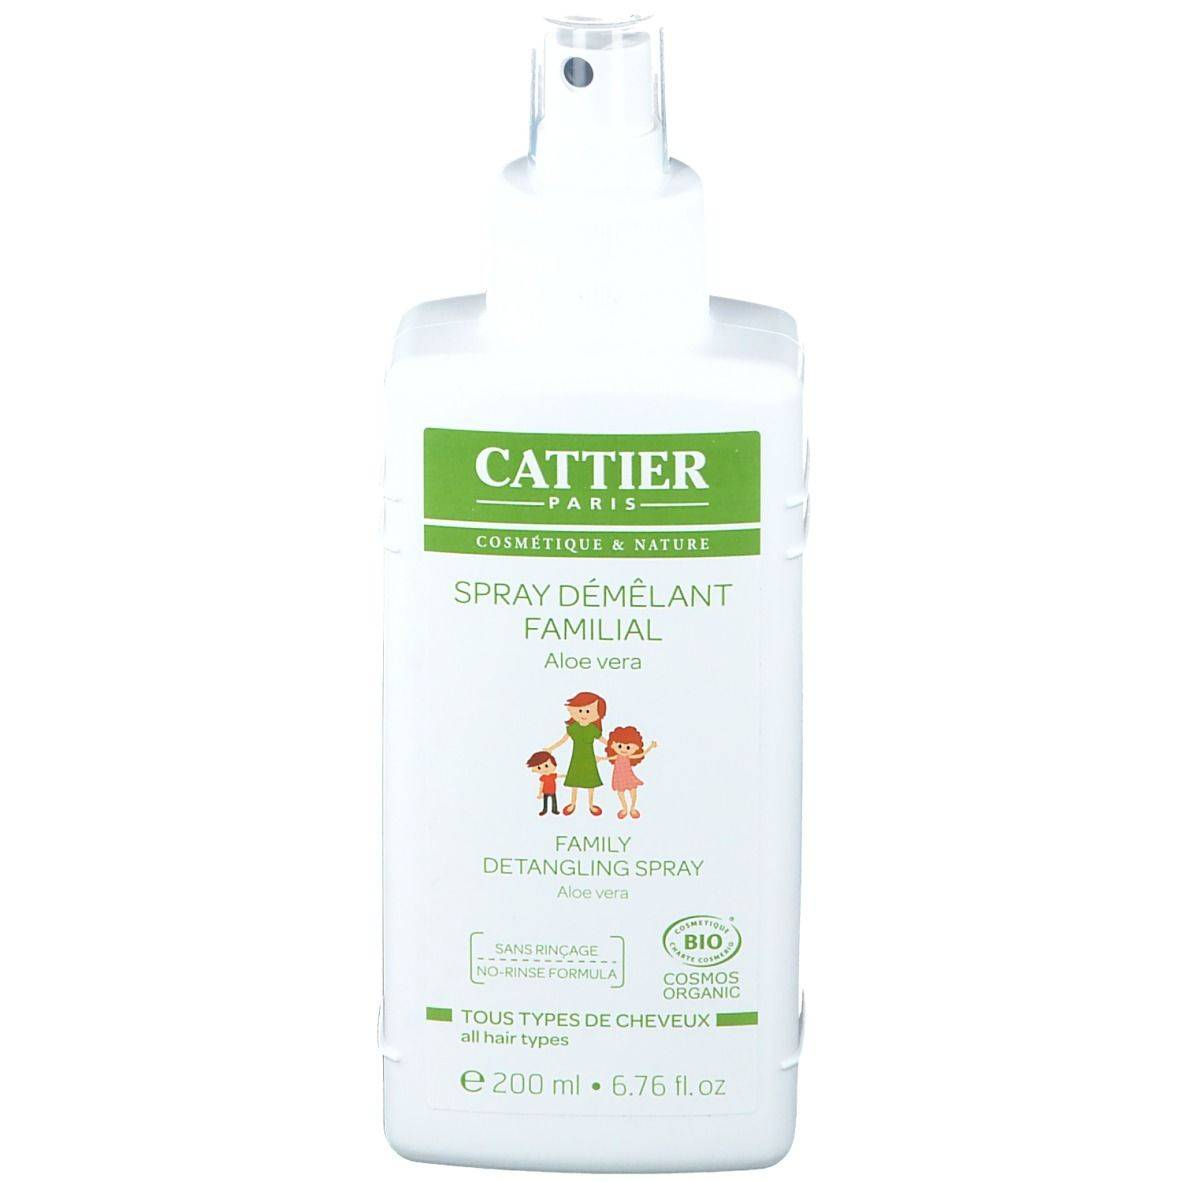 Cattier Spray démêlant familial tous types de cheveux ml spray